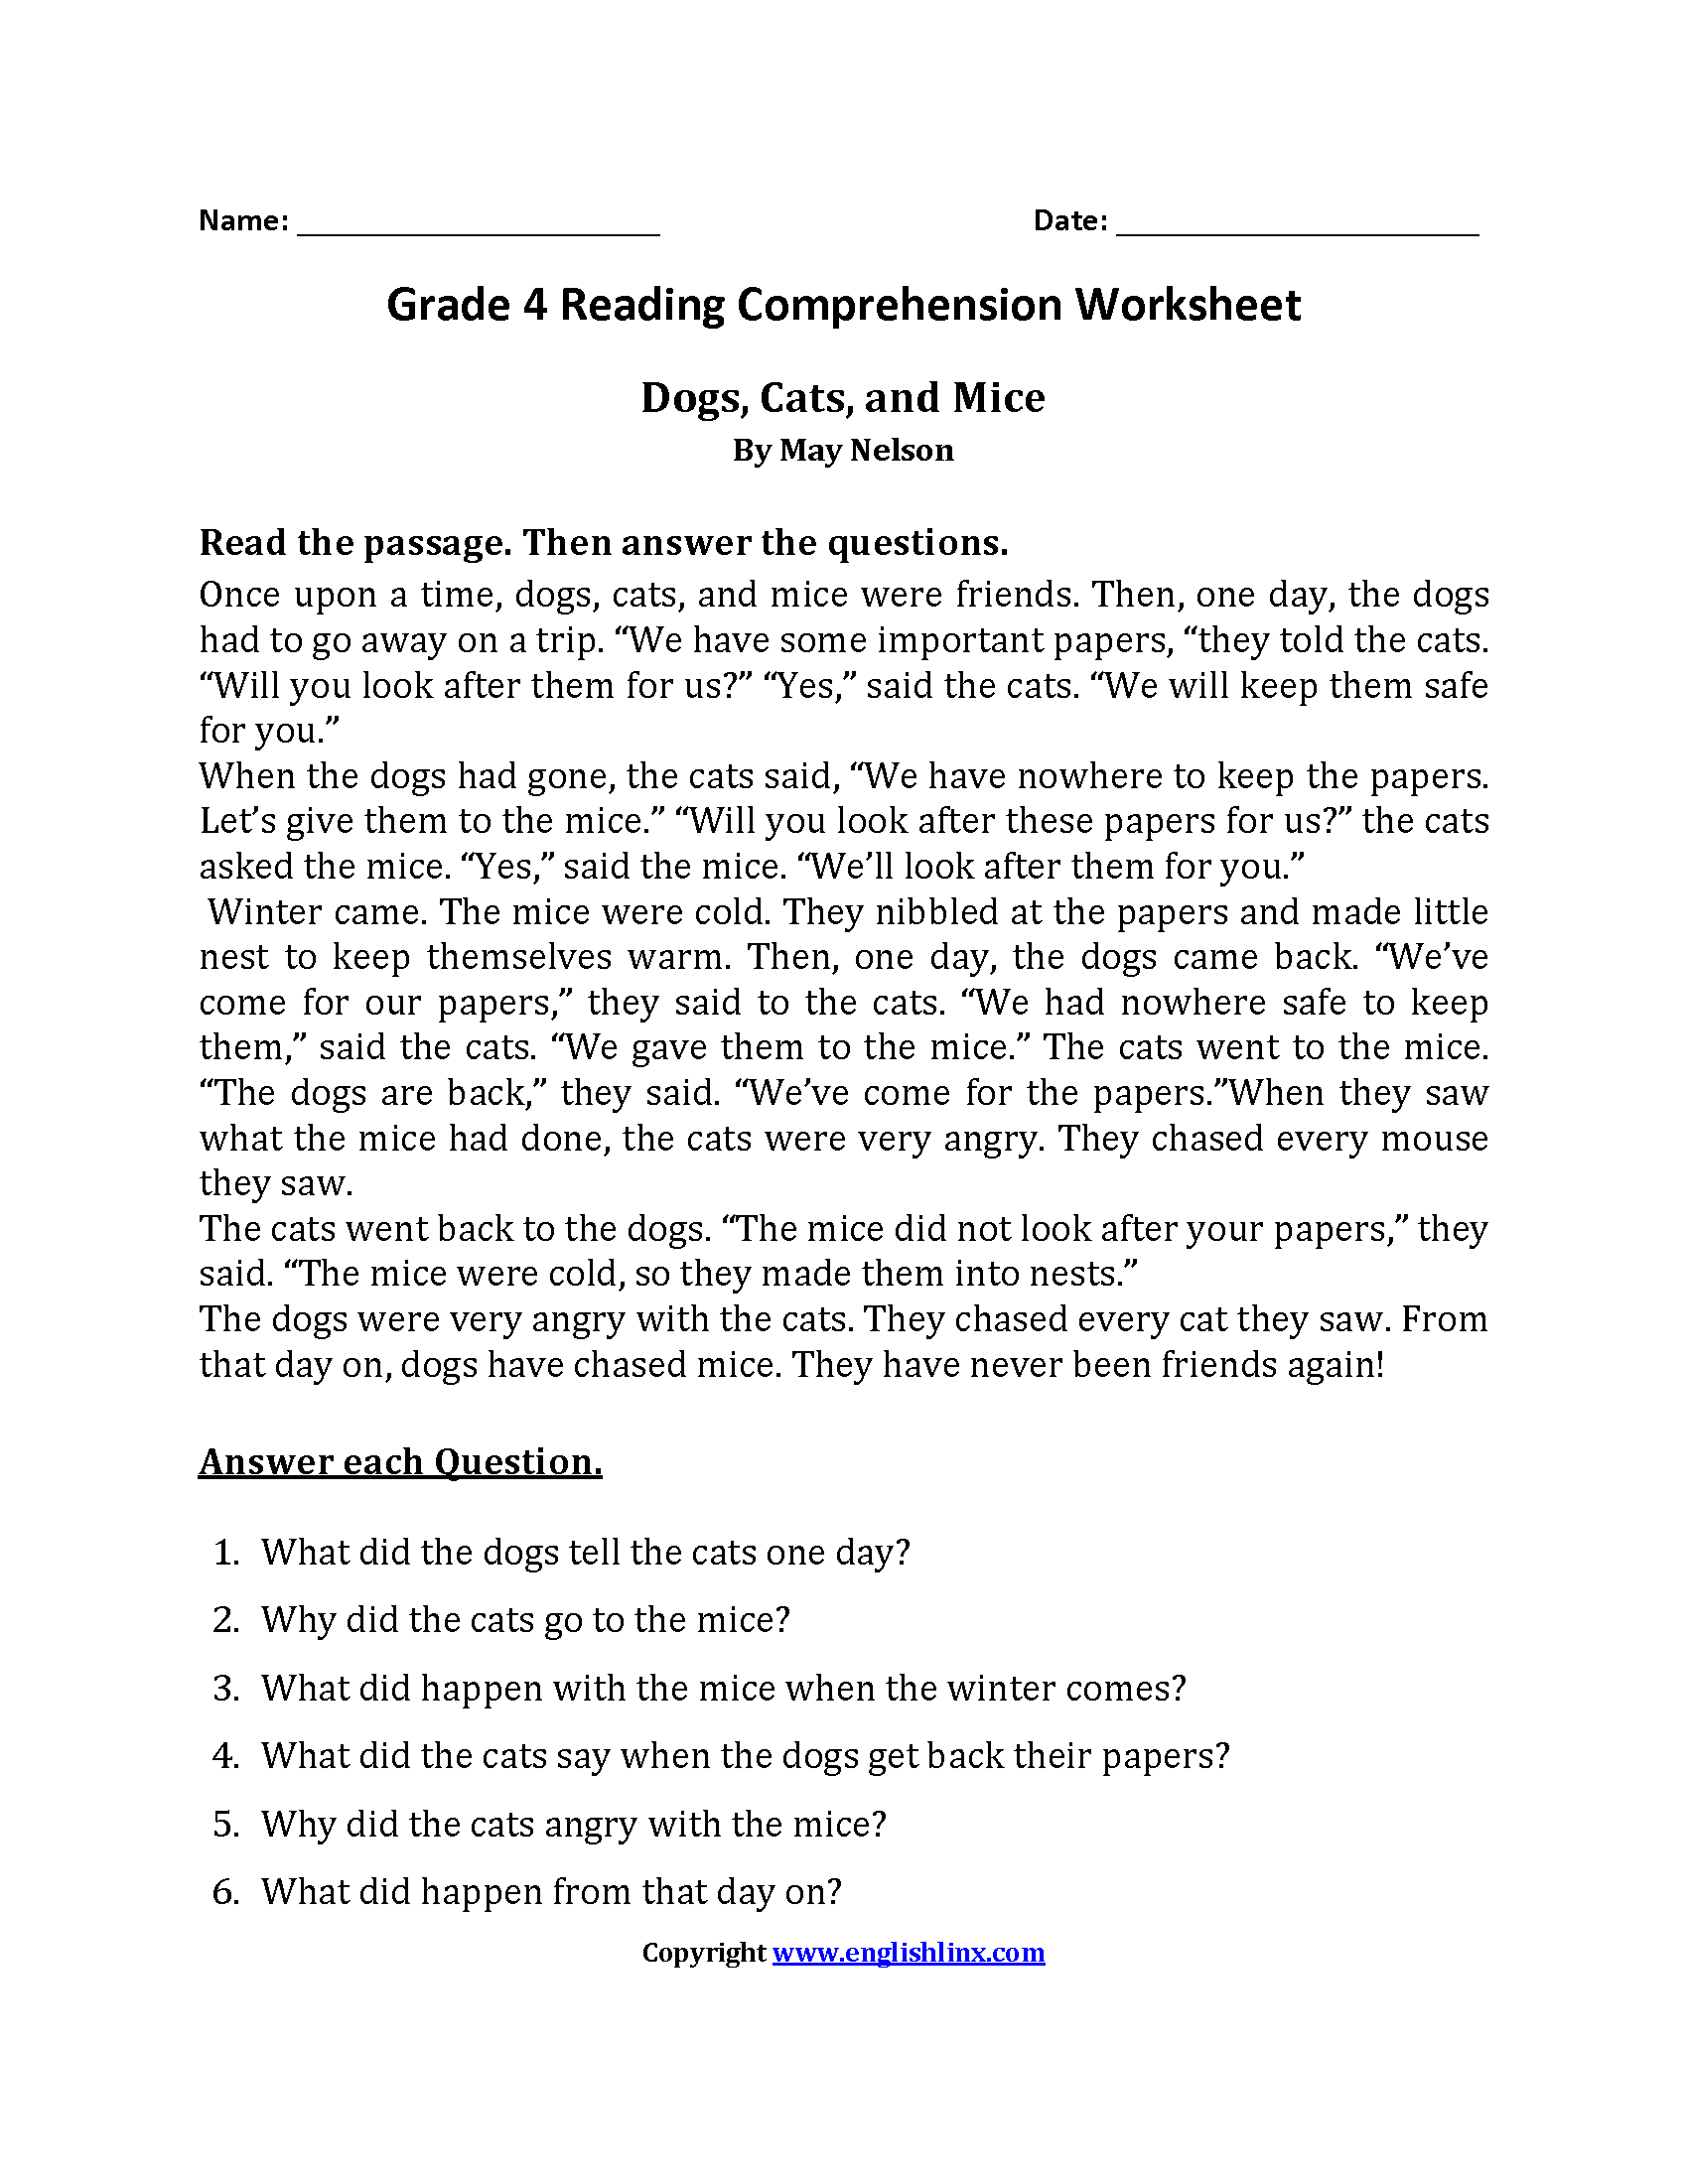 - Dogs, Cats And Mice Fourth Grade Reading Worksheets On Best